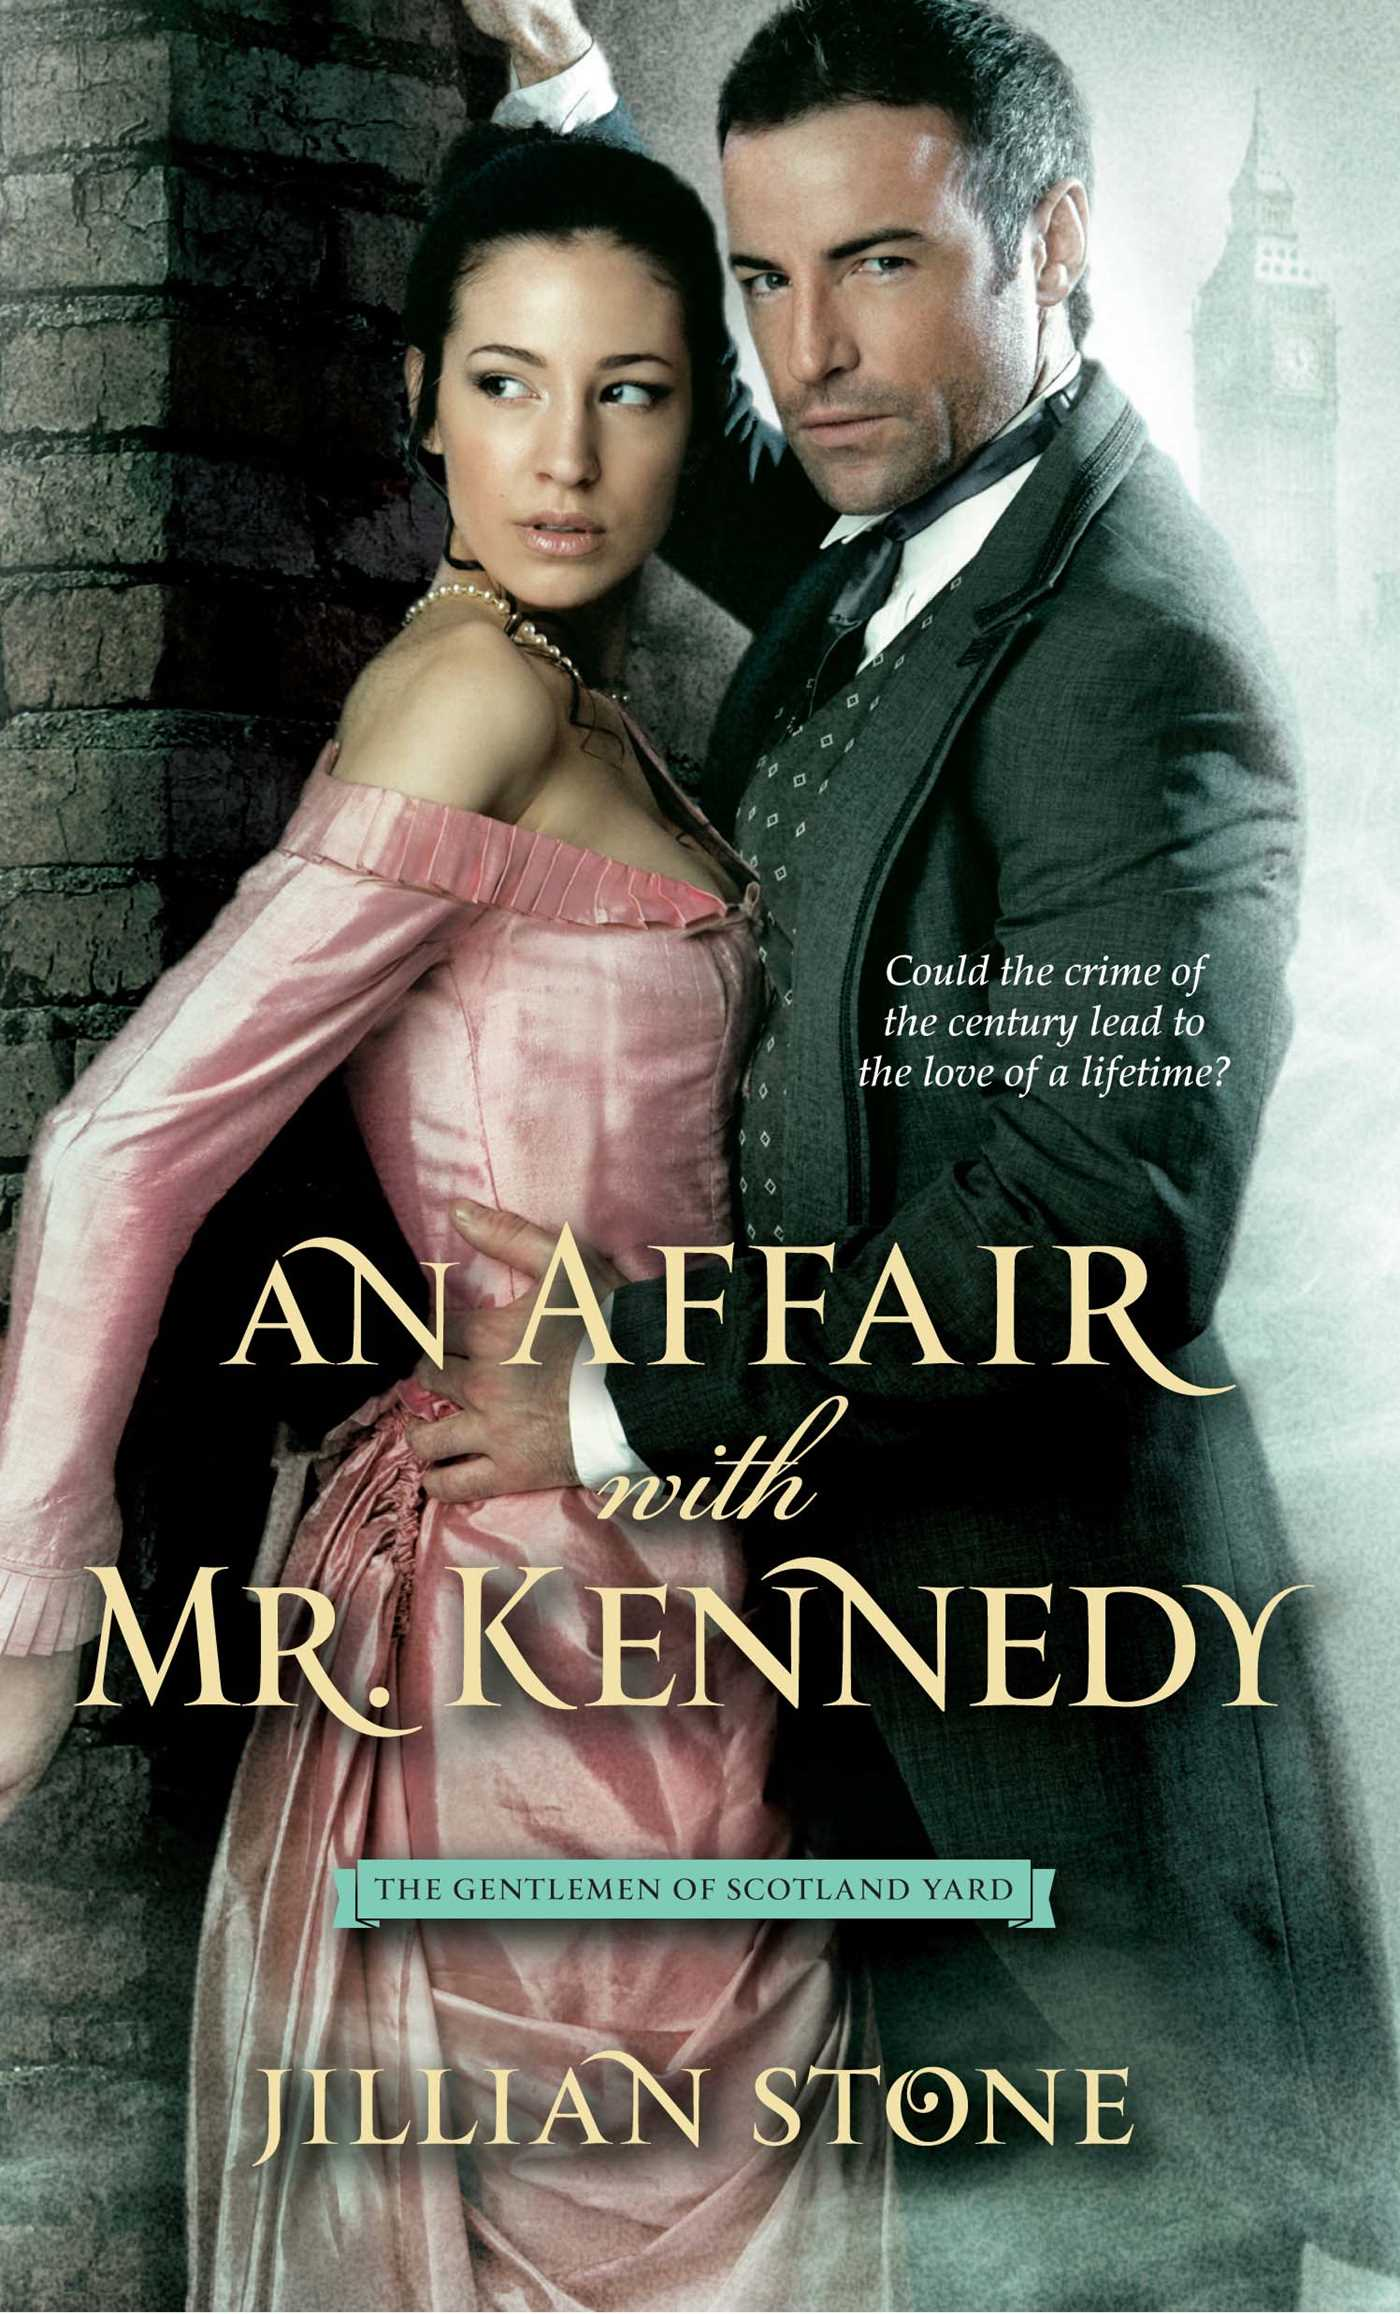 An affair with mr kennedy 9781451629071 hr